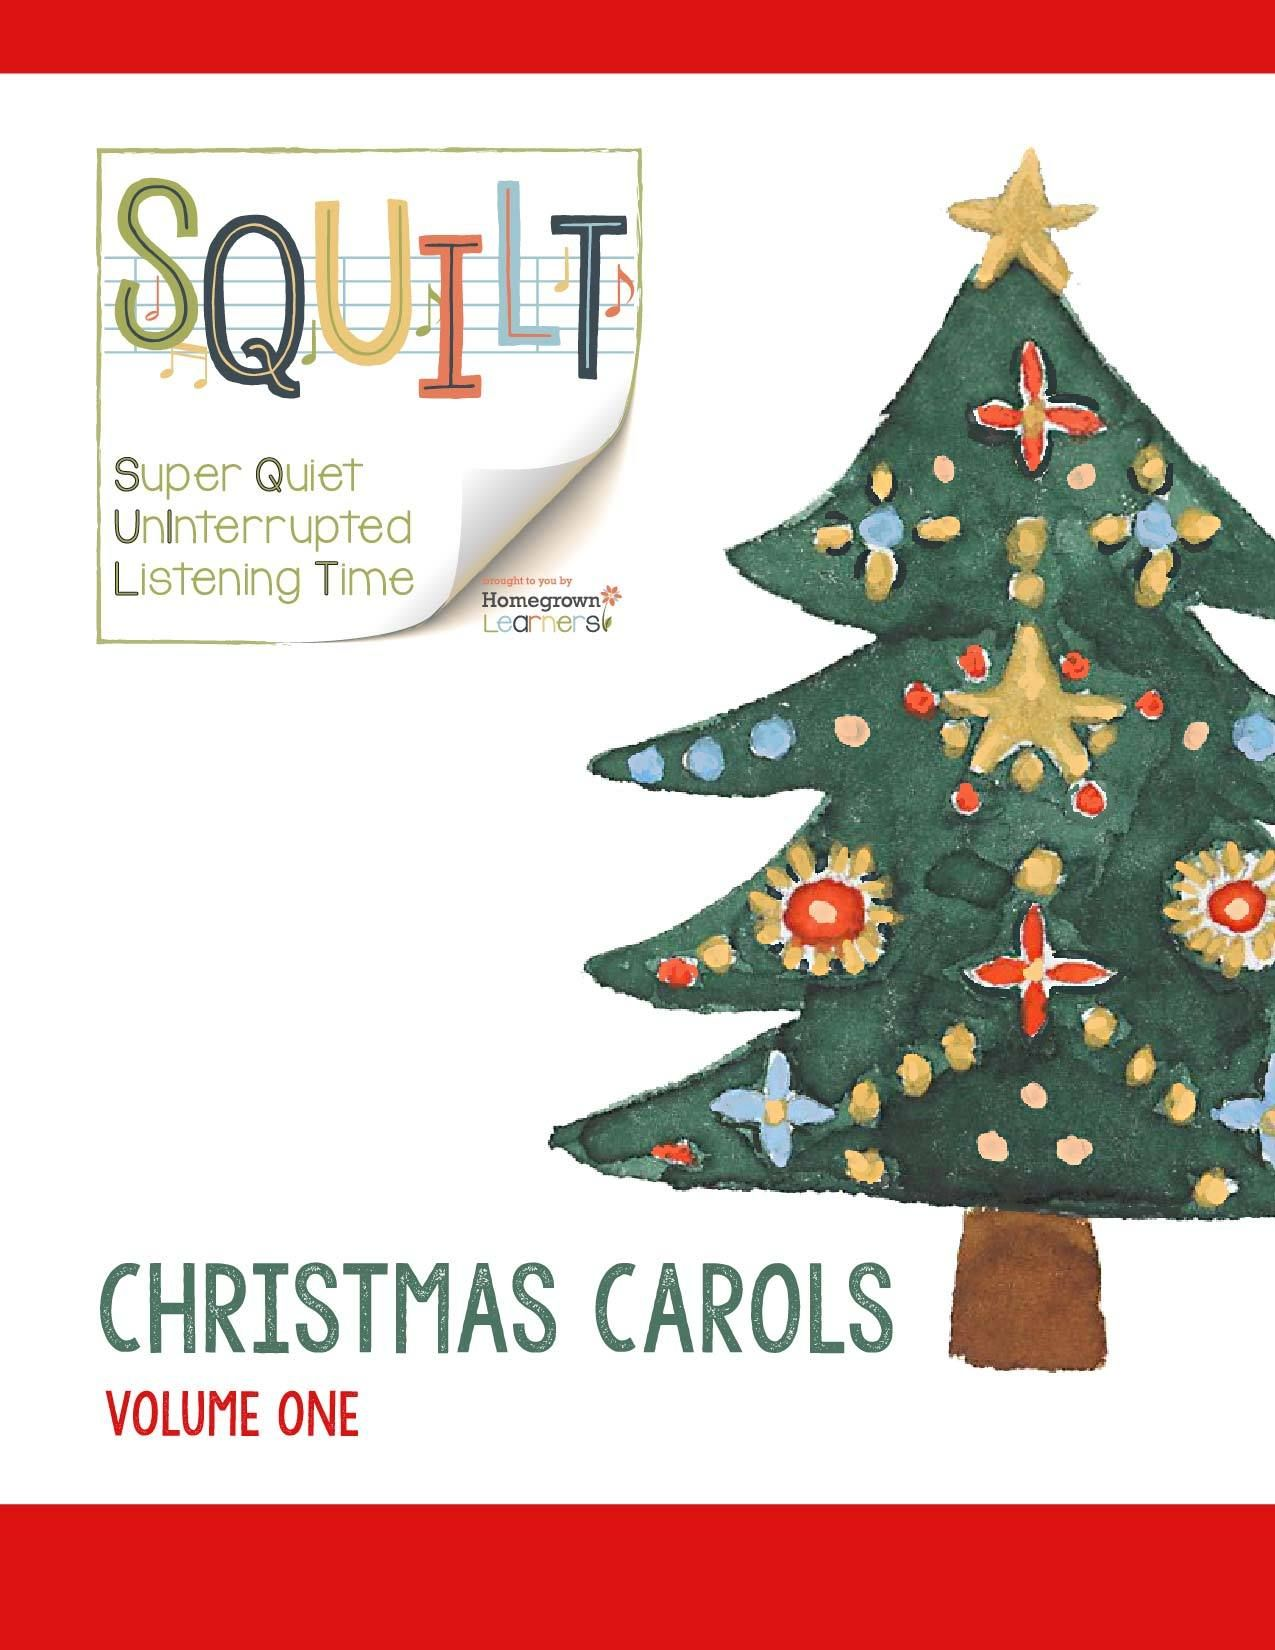 Christmas Carols With Images Christmas Learning Activities Christmas Carol Christmas Learning